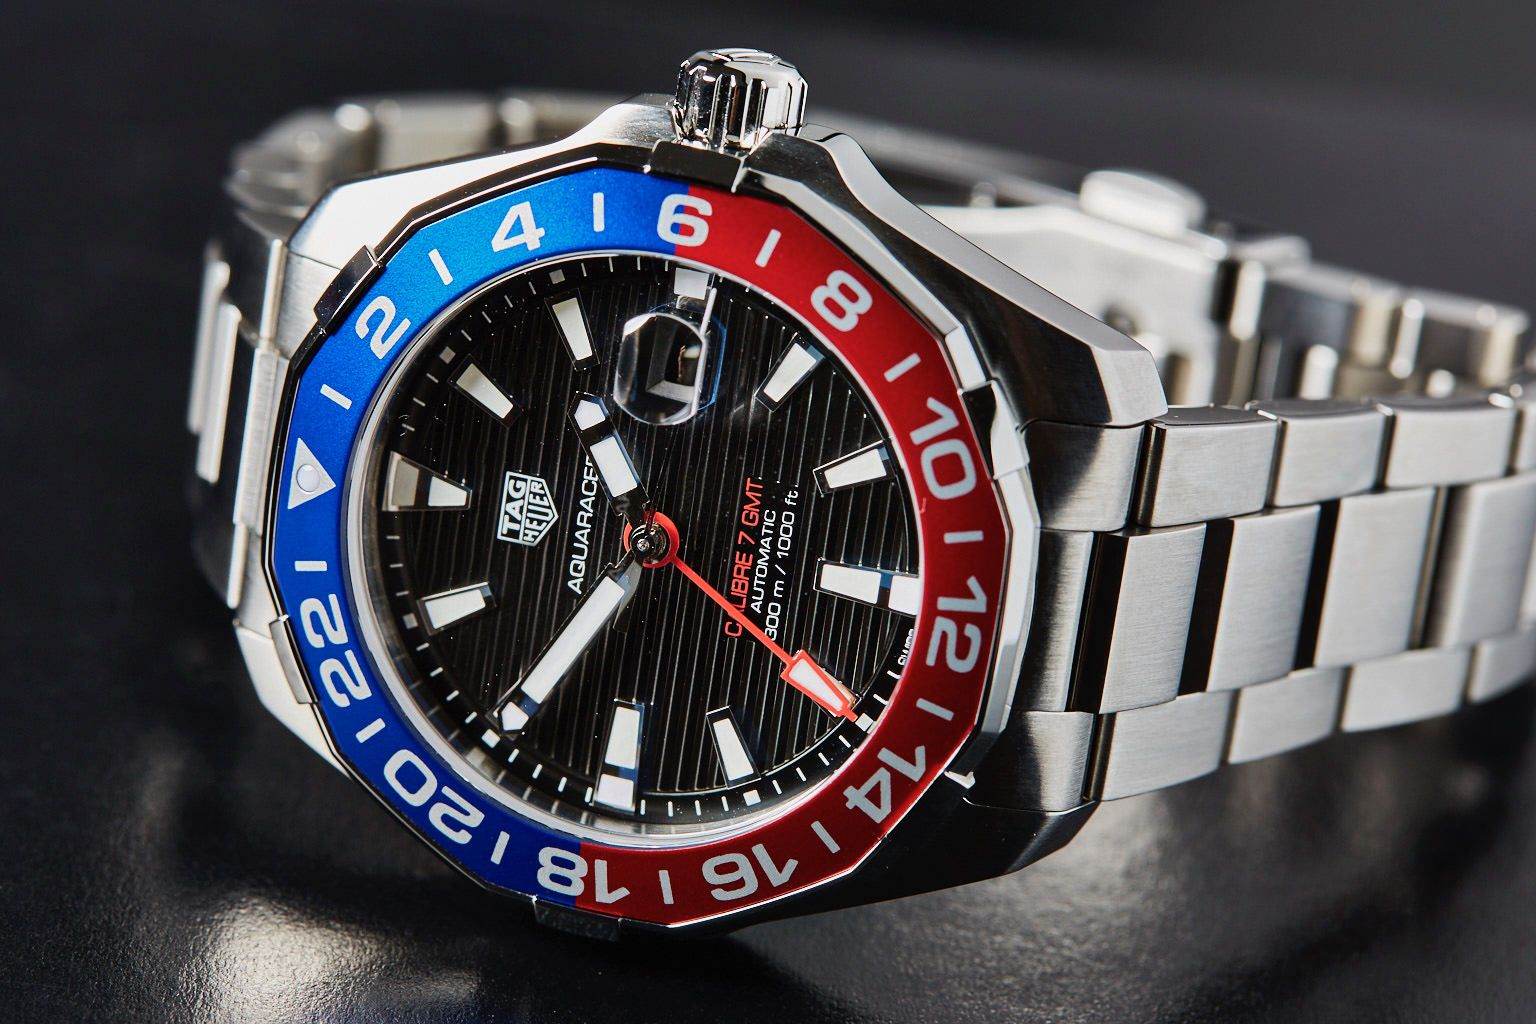 6c89d642489 2017 TAG Heuer Aquaracer 300m GMT Pepsi Want something a little cheaper   Here are 8